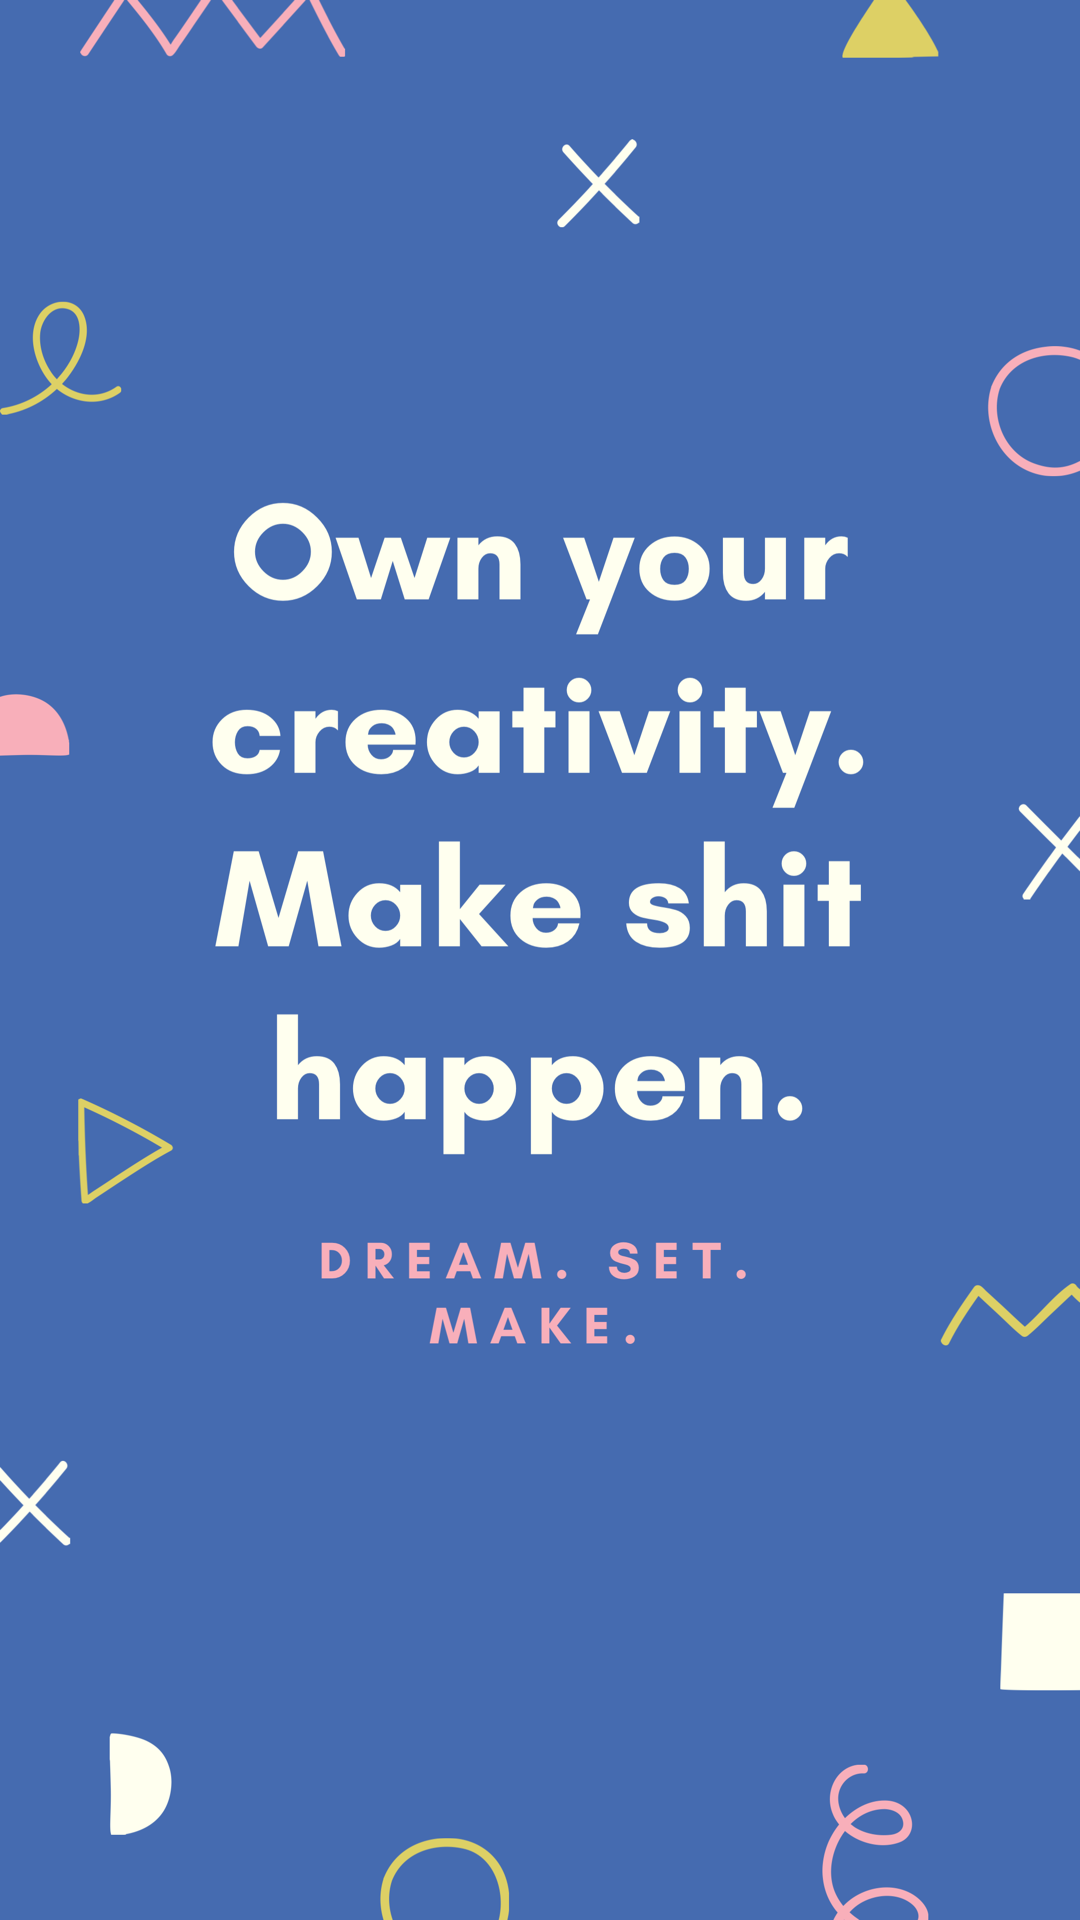 Own your creativity.